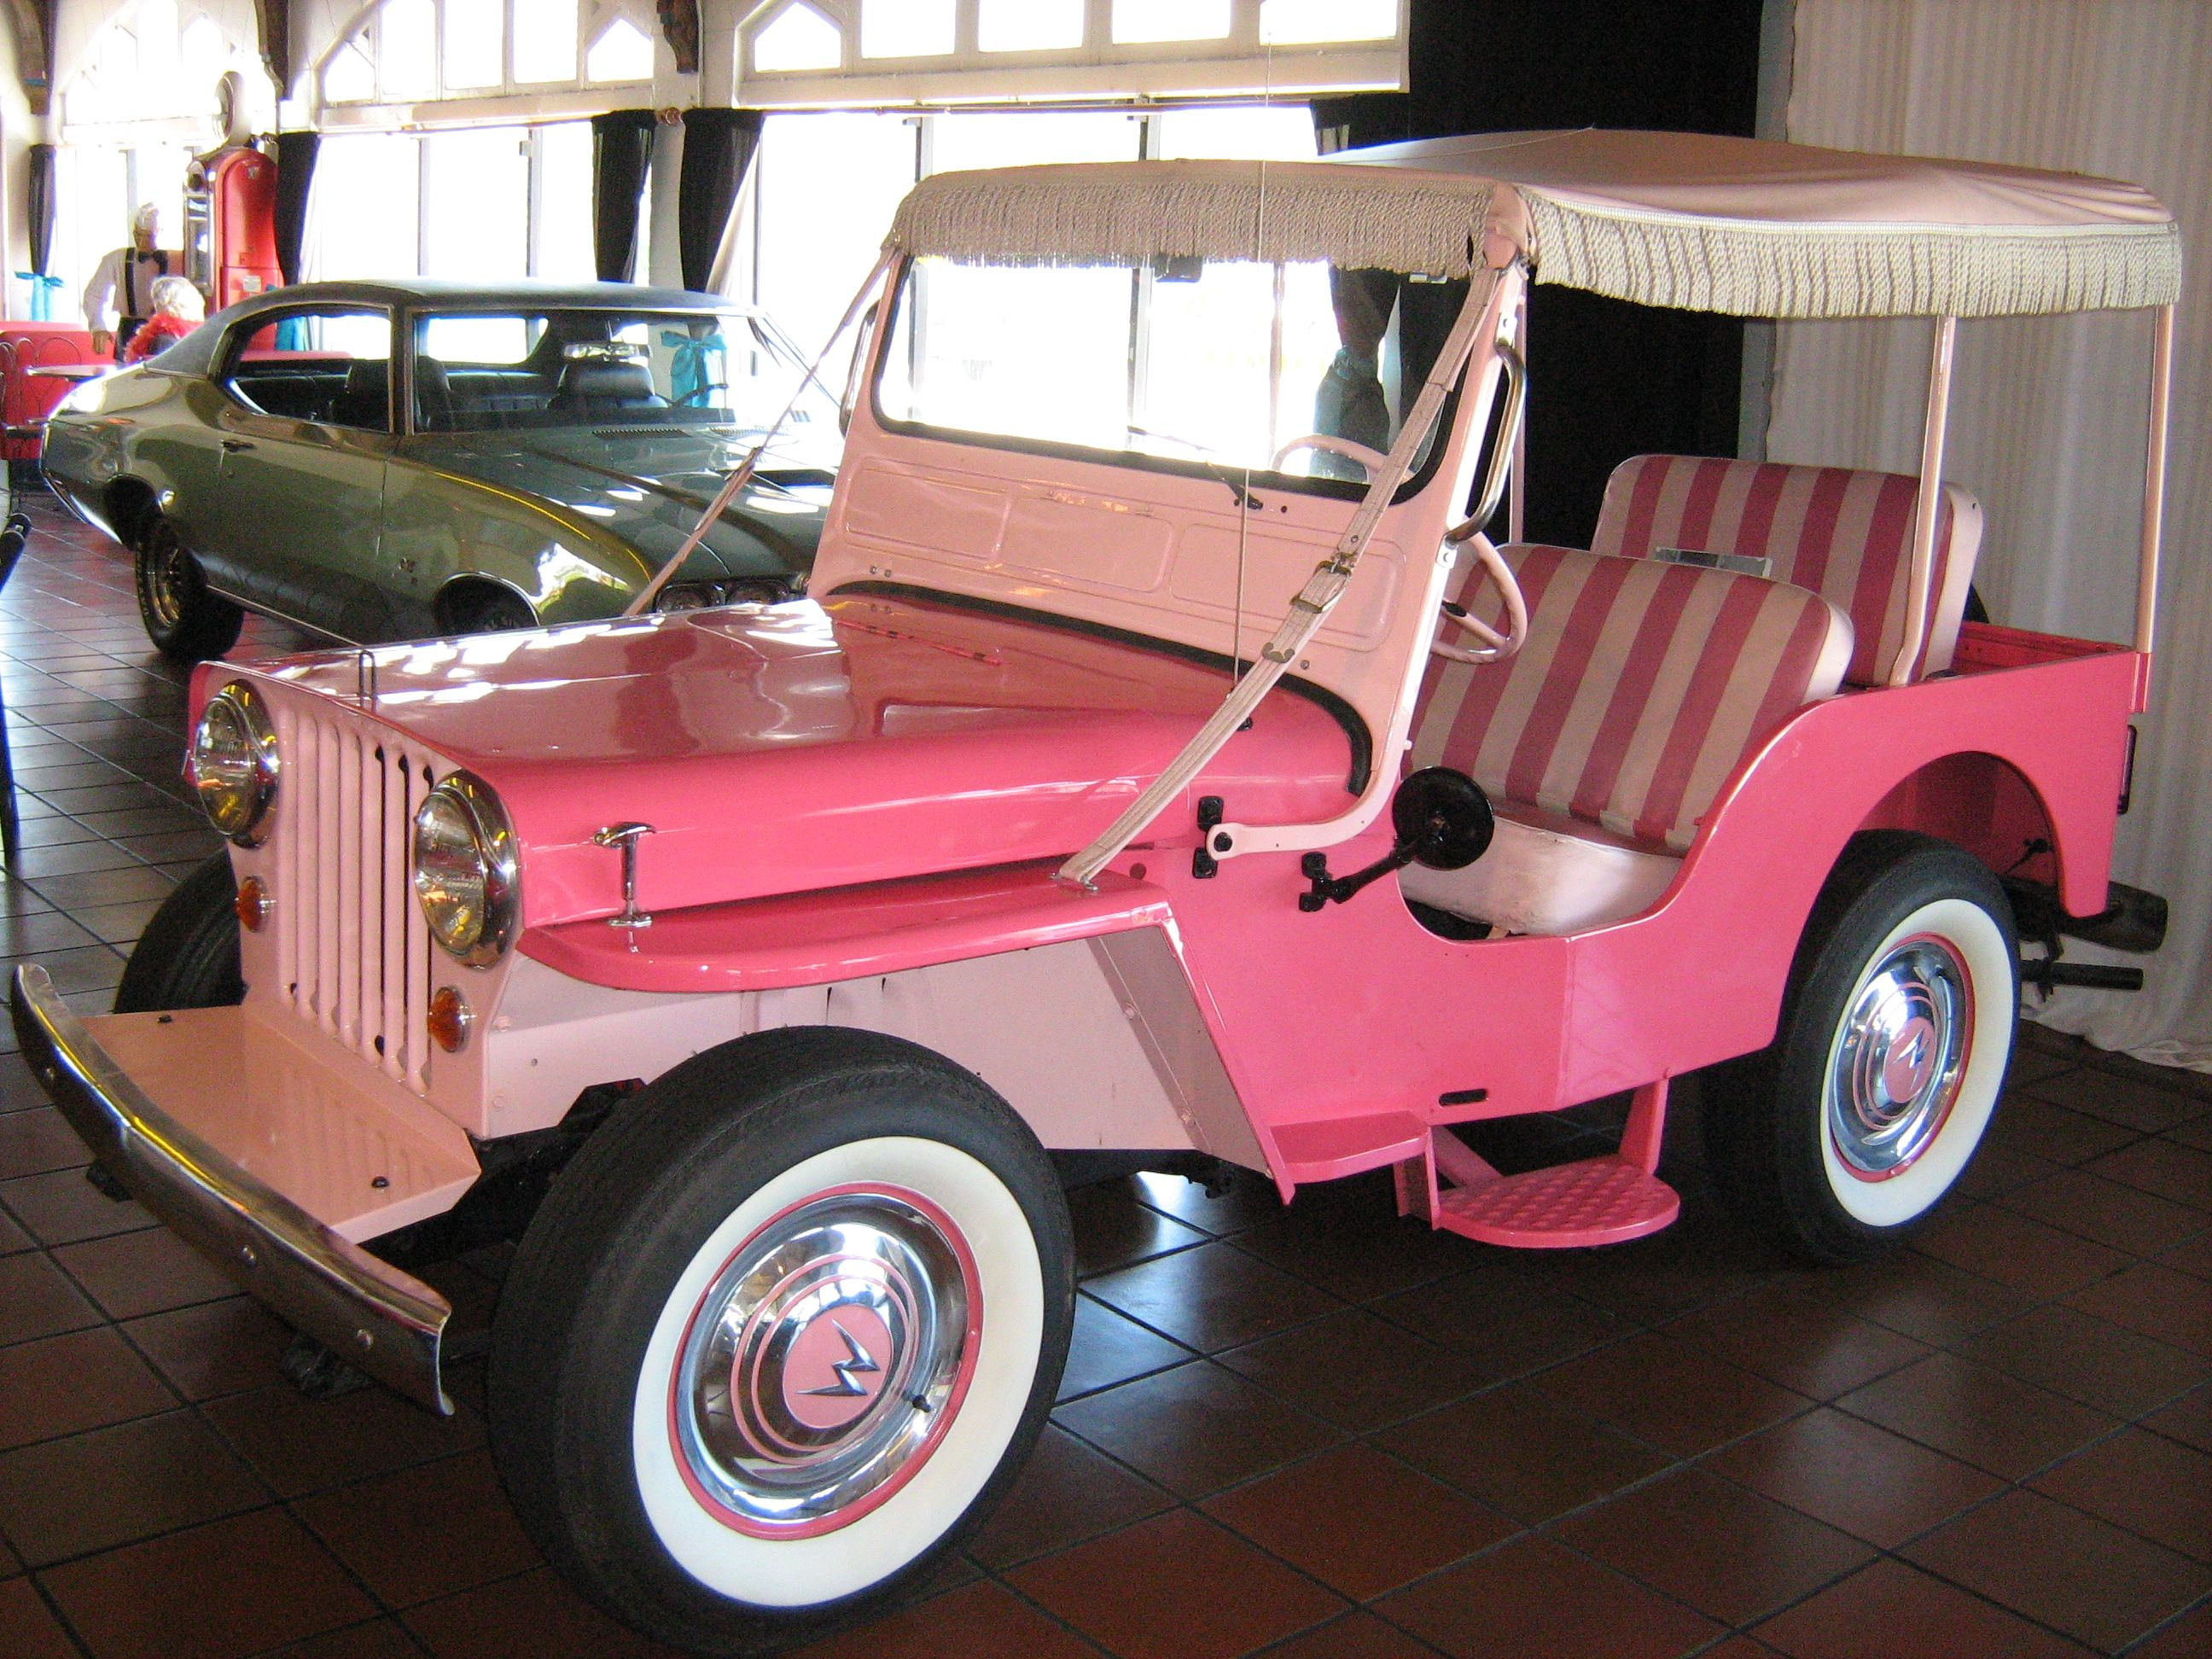 Pink Antique Jeep I Have A Tonka Truck From The 60 S That Looks Just Like This